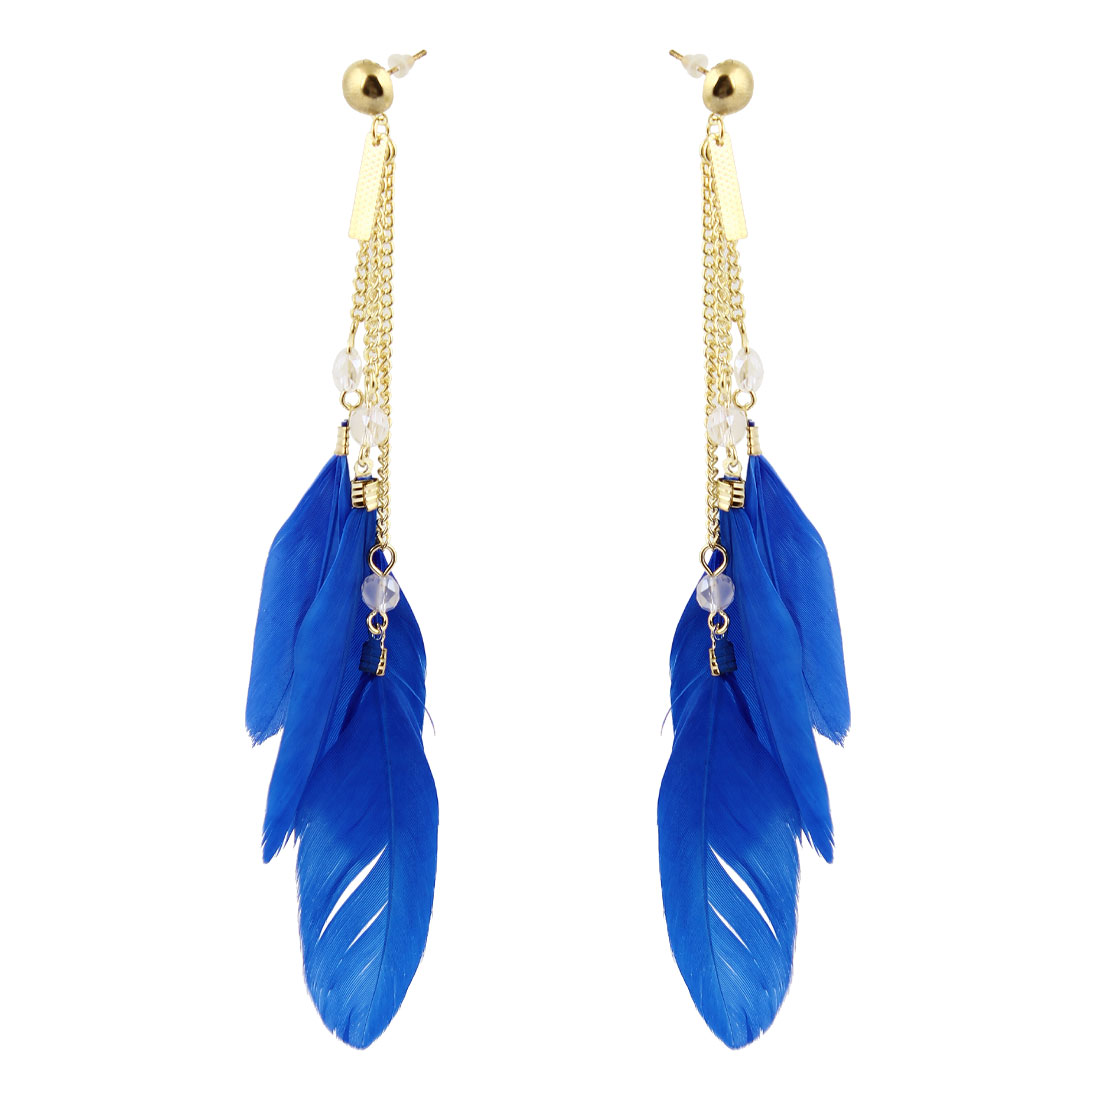 Pair Chain Connect Blue Feather Pendant Dangling Earring Eardrop for Women